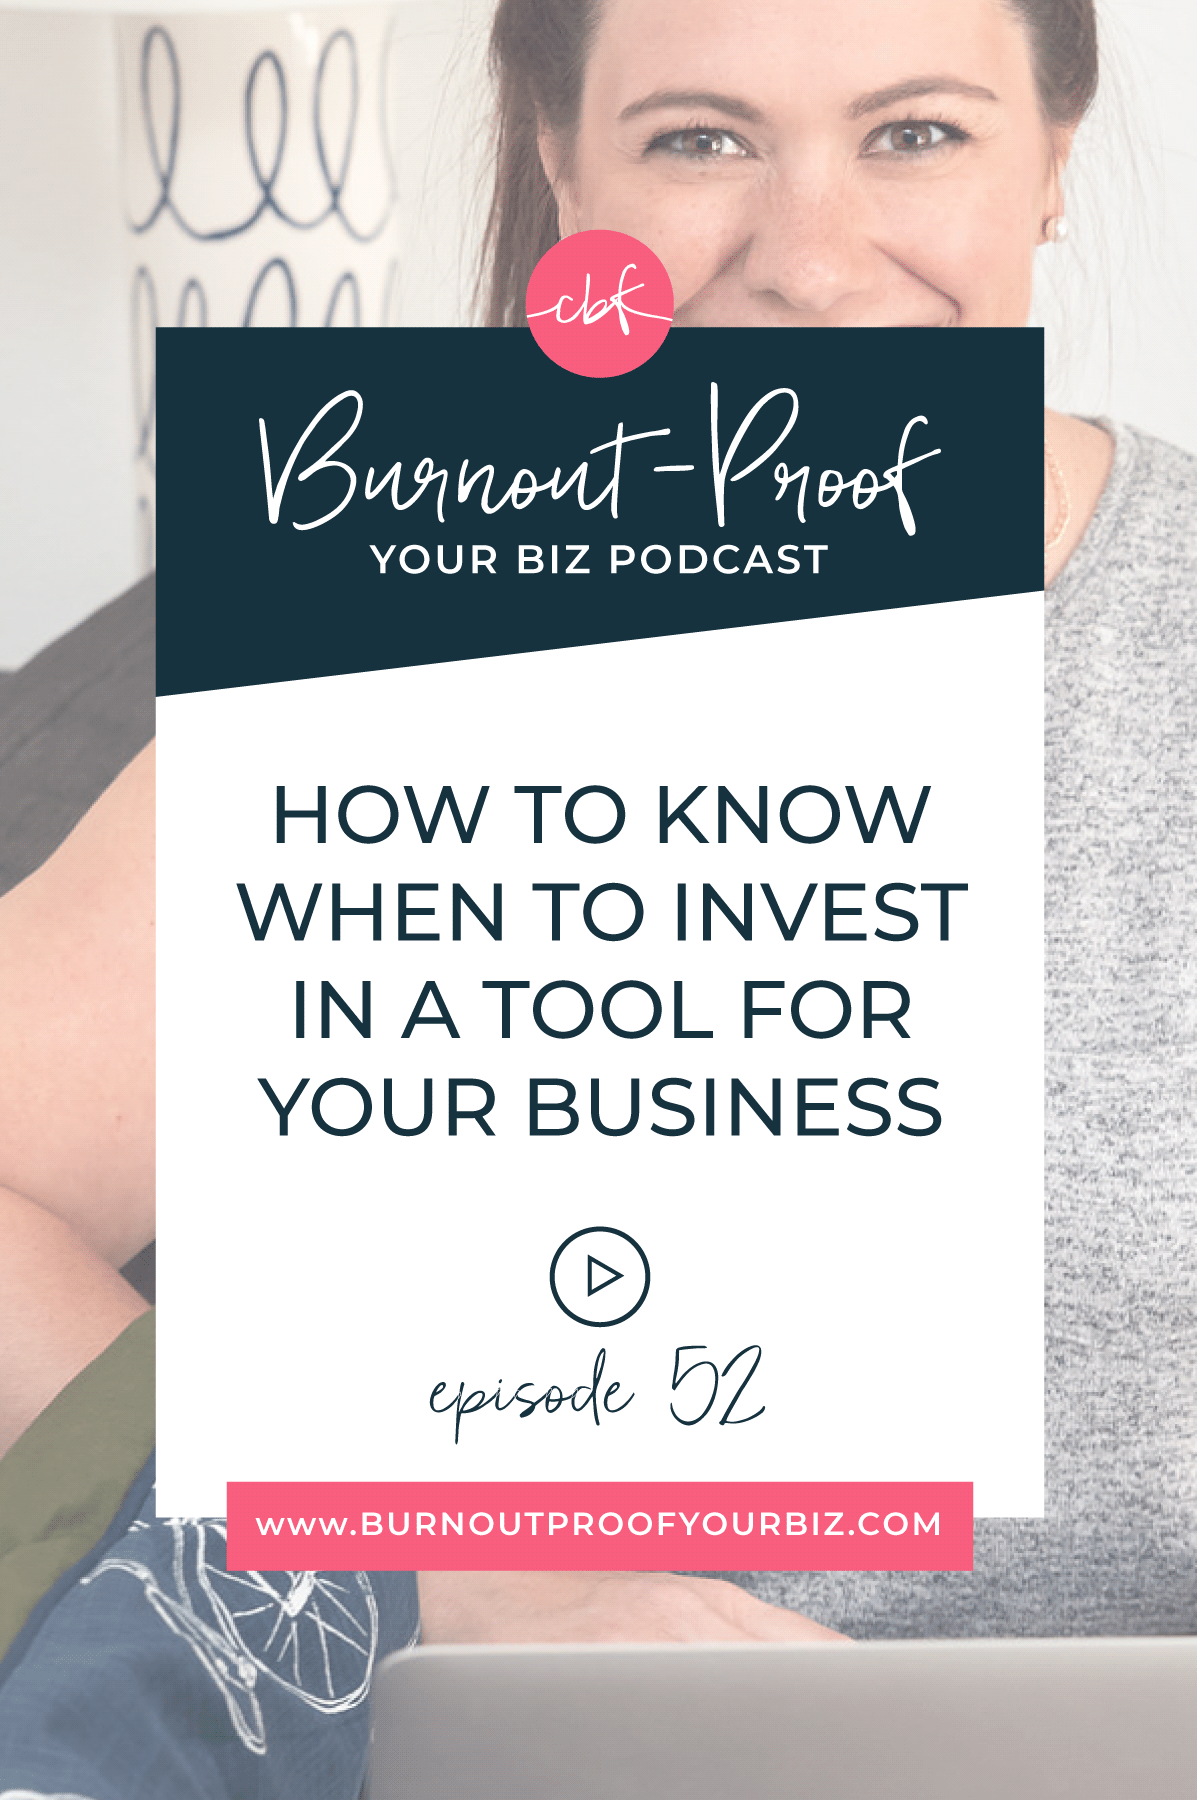 How to Know When To Invest In A Tool For Your Business | Burnout-Proof Your Biz Podcast with Chelsea B Foster | Episode 052 - How to Know When to Invest In a Tool for Your Business | Learn how to run your biz and live your dream life on your own terms without the fear of burnout.  Business Coach | Workflow & Productivity Specialist | Free vs. Paid Apps for Your Business | Free Trials + When to Upgrade | Investing in Your Business | Growth Strategy | Overwhelmed | Stressed-out | Journaling Activity | Creative Entrepreneur | Creative Influencer | Productivity | Dream life | Freedom Lifestyle | Having a business that supports your dream life |